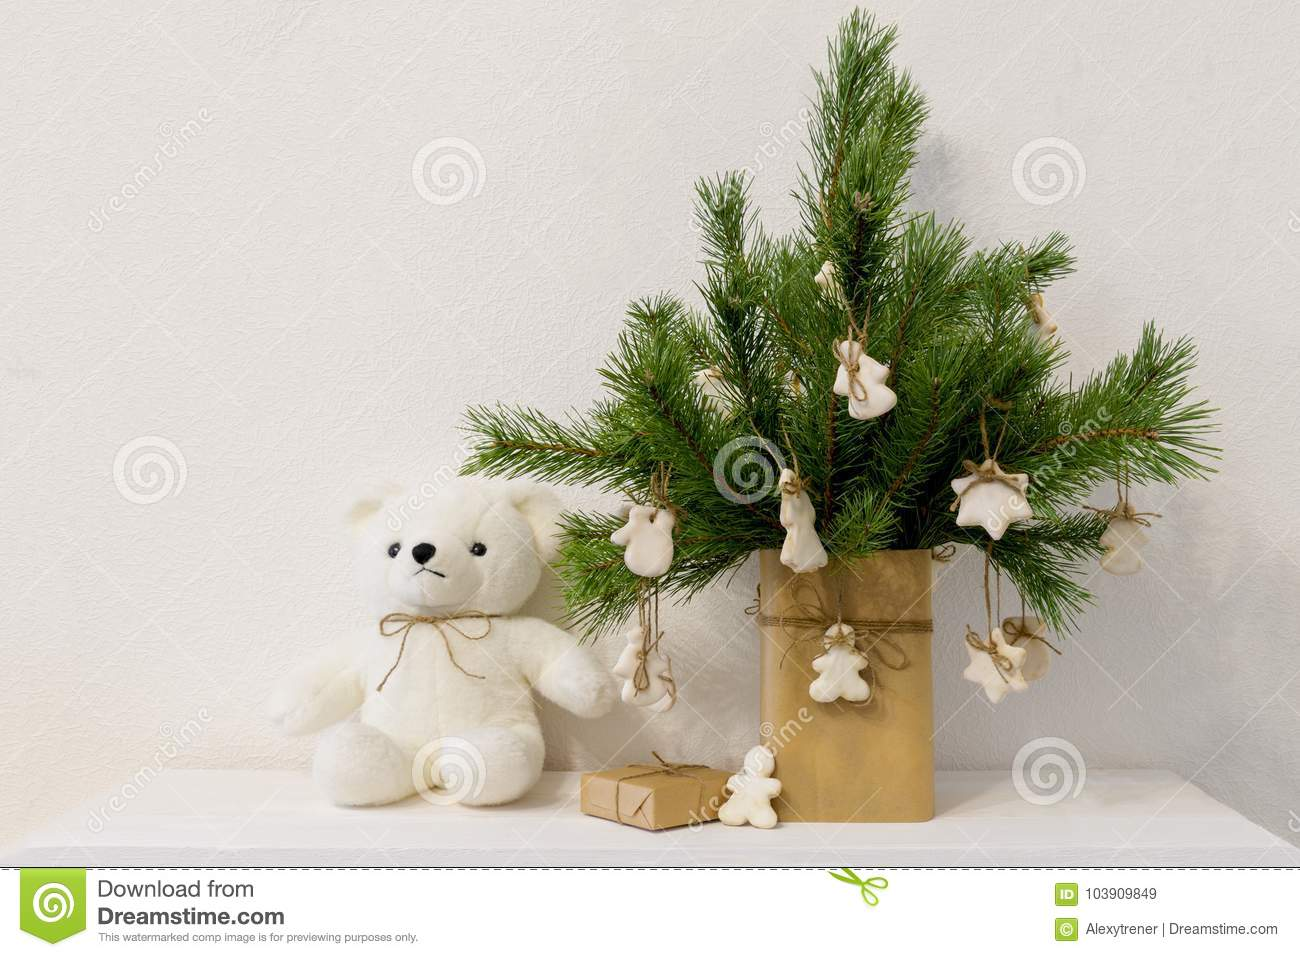 Christmas Pine Branch In Vase With Homemade Cookies White Bear